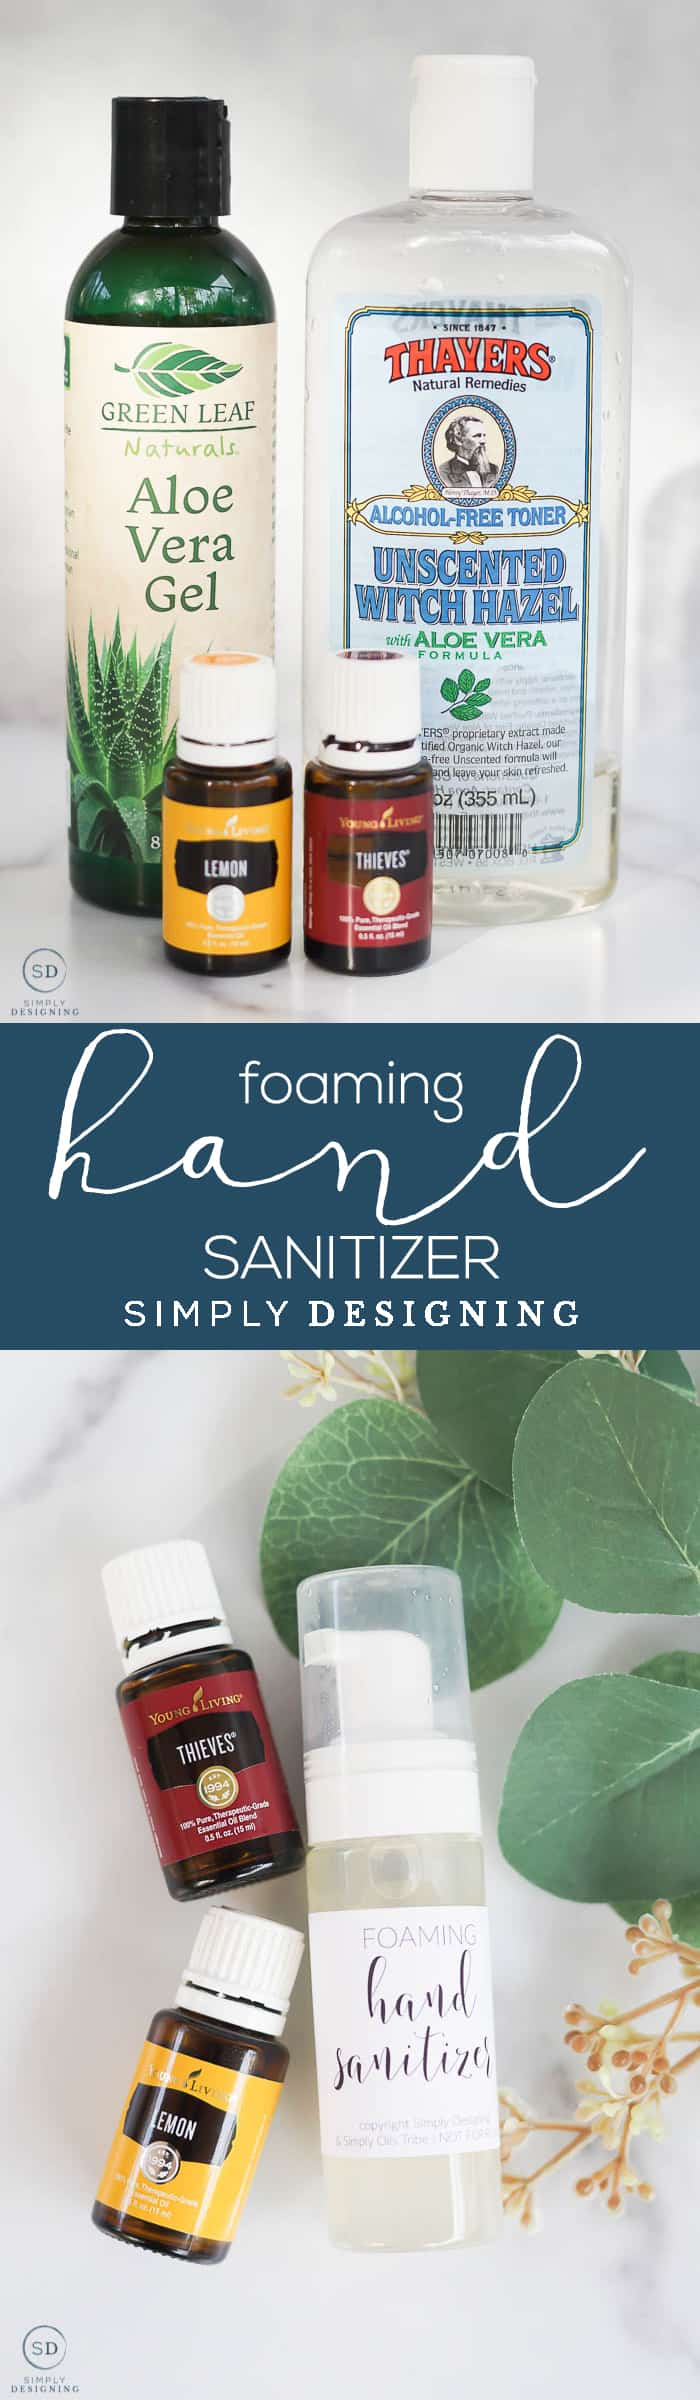 When soap and water are not available this homemade foaming hand sanitizer is an all-natural alternative - Come learn how to make foaming hand soap